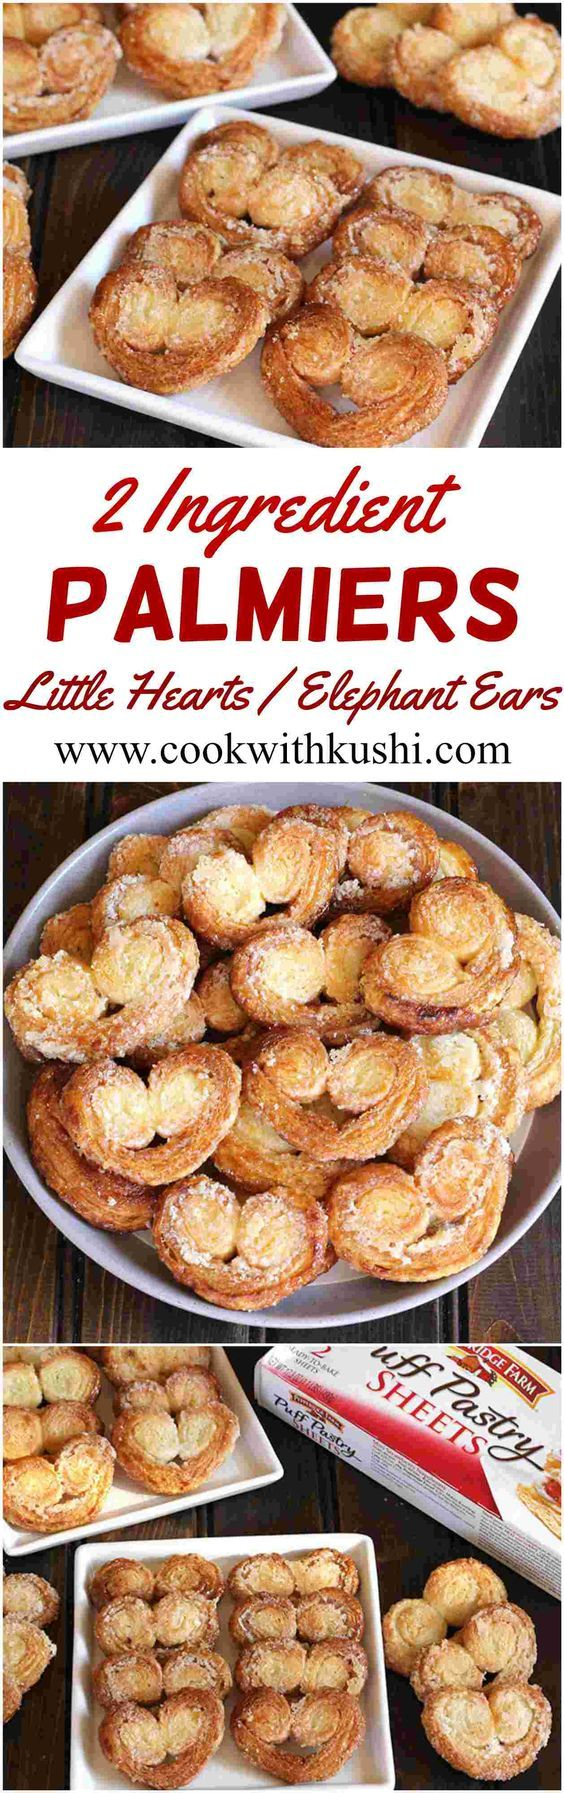 Palmiers or Little Hearts or Elephant ears are irresistibly delicious, melt in mouth crispy and flaky biscuits prepared using only 2 ingredients. These biscuits brought back many sweet memories from my childhood :-) #vegan #biscuit #appetizer #snack #vegan #thanksgiving #holiday #cookie #christmas #friendgiving #inspiredbypuff #ad #bake #fingerfood: